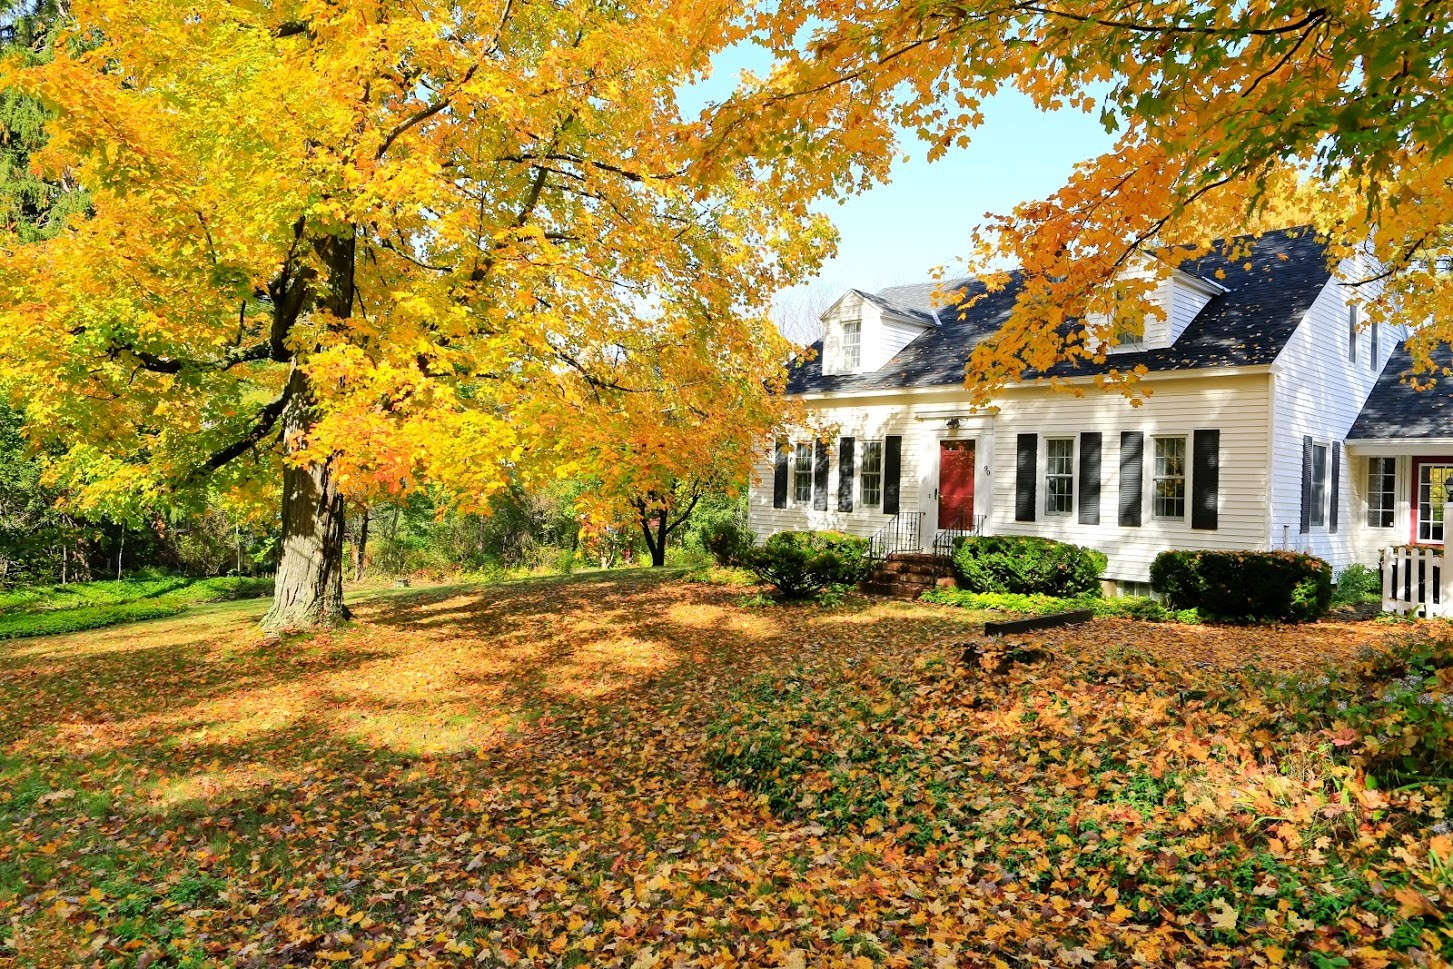 house with leaves.jpg